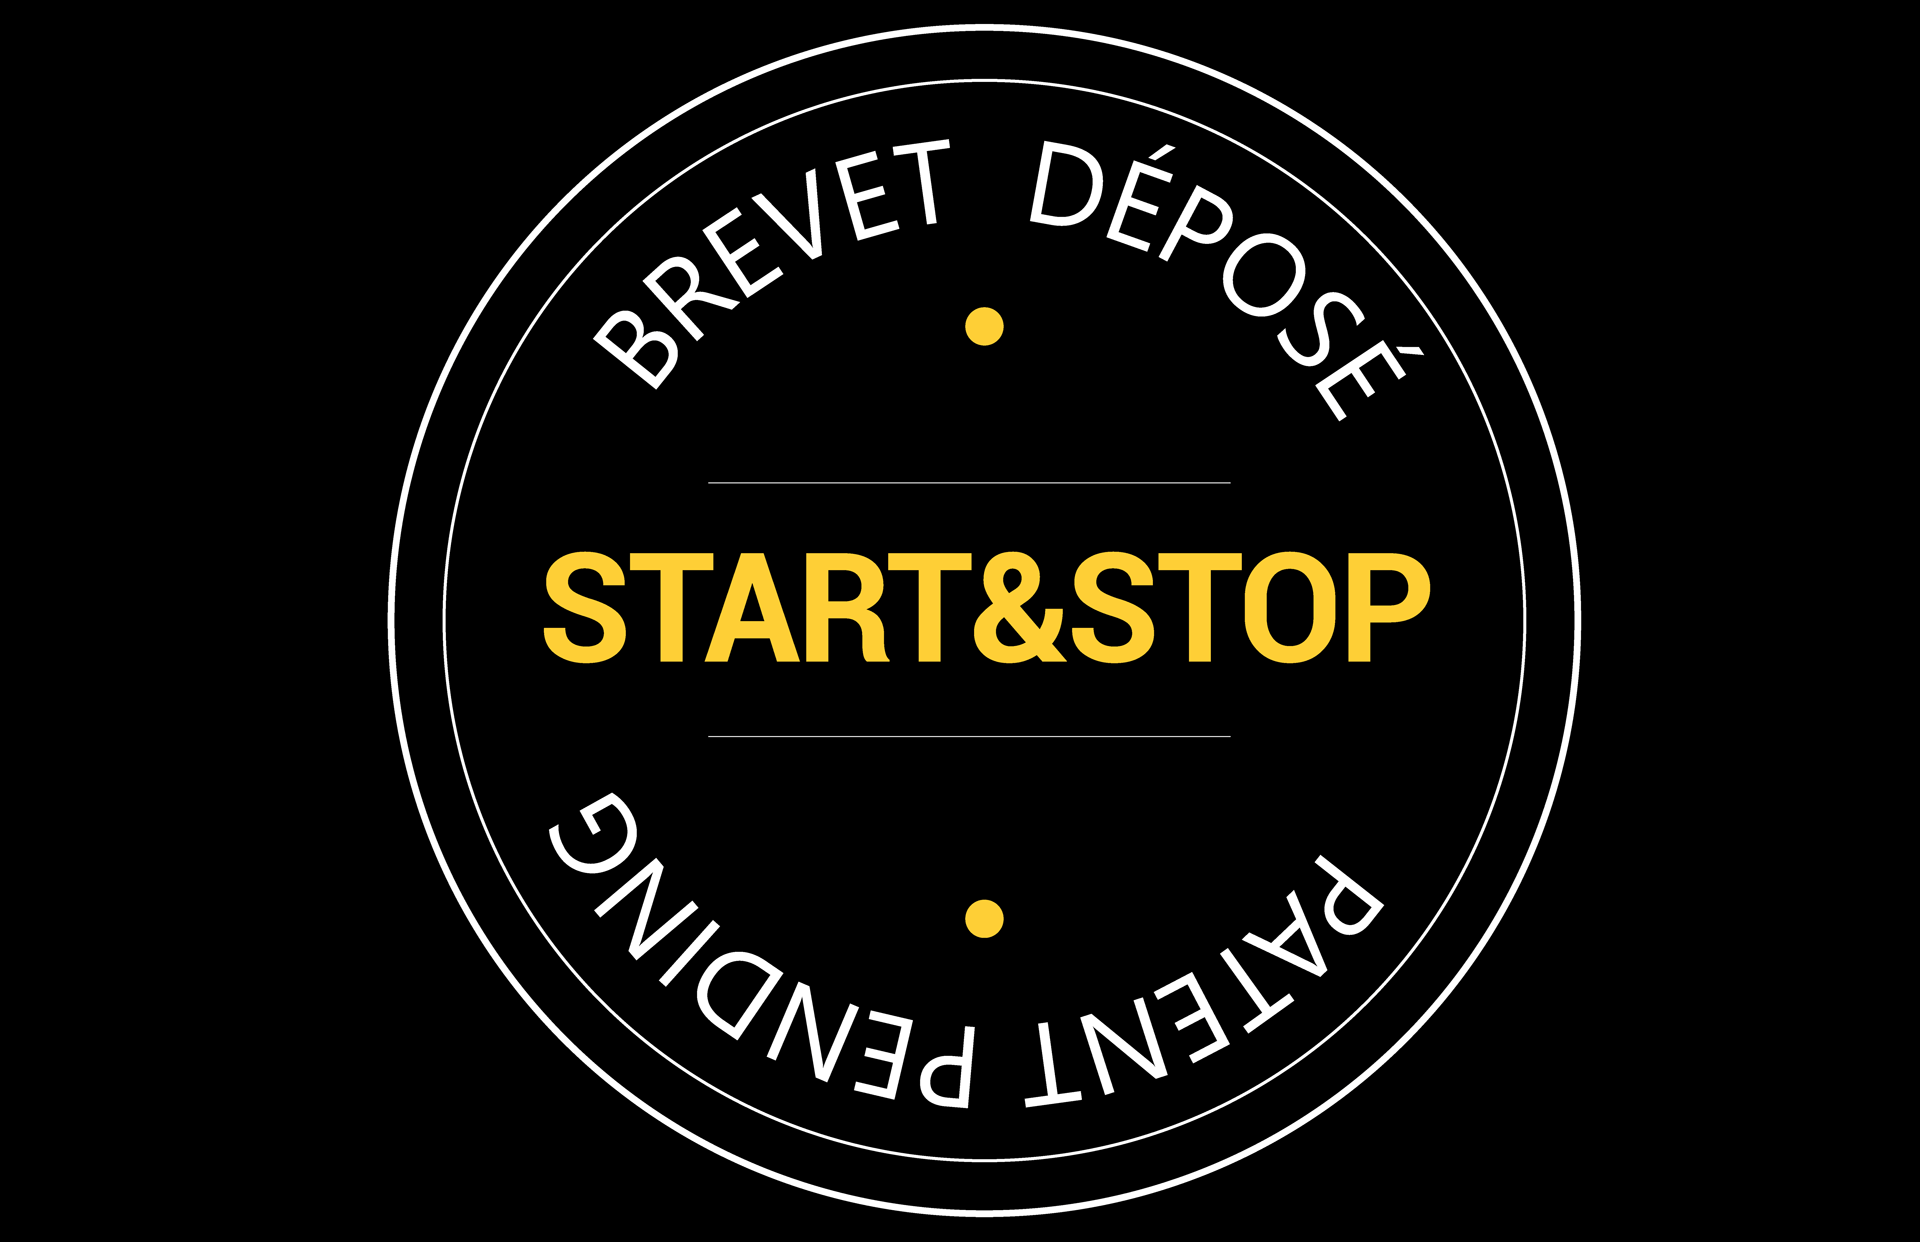 stilys-defroisseurs-vapeur-steamer-brevet-depose-start-and-stop-steamone